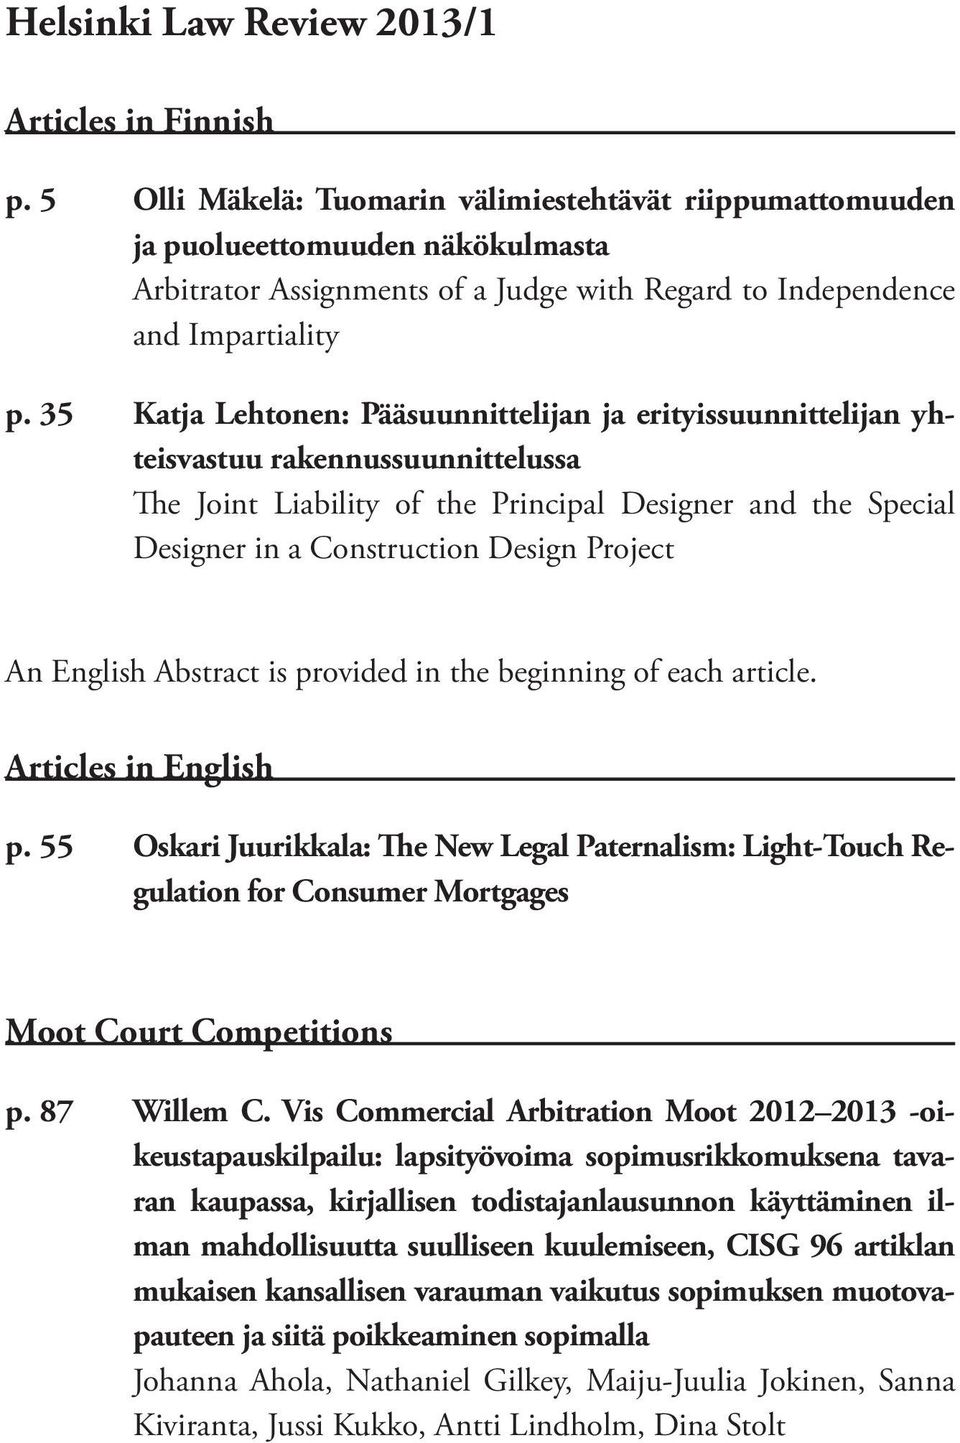 35 Katja Lehtonen: Pääsuunnittelijan ja erityissuunnittelijan yhteisvastuu rakennussuunnittelussa The Joint Liability of the Principal Designer and the Special Designer in a Construction Design